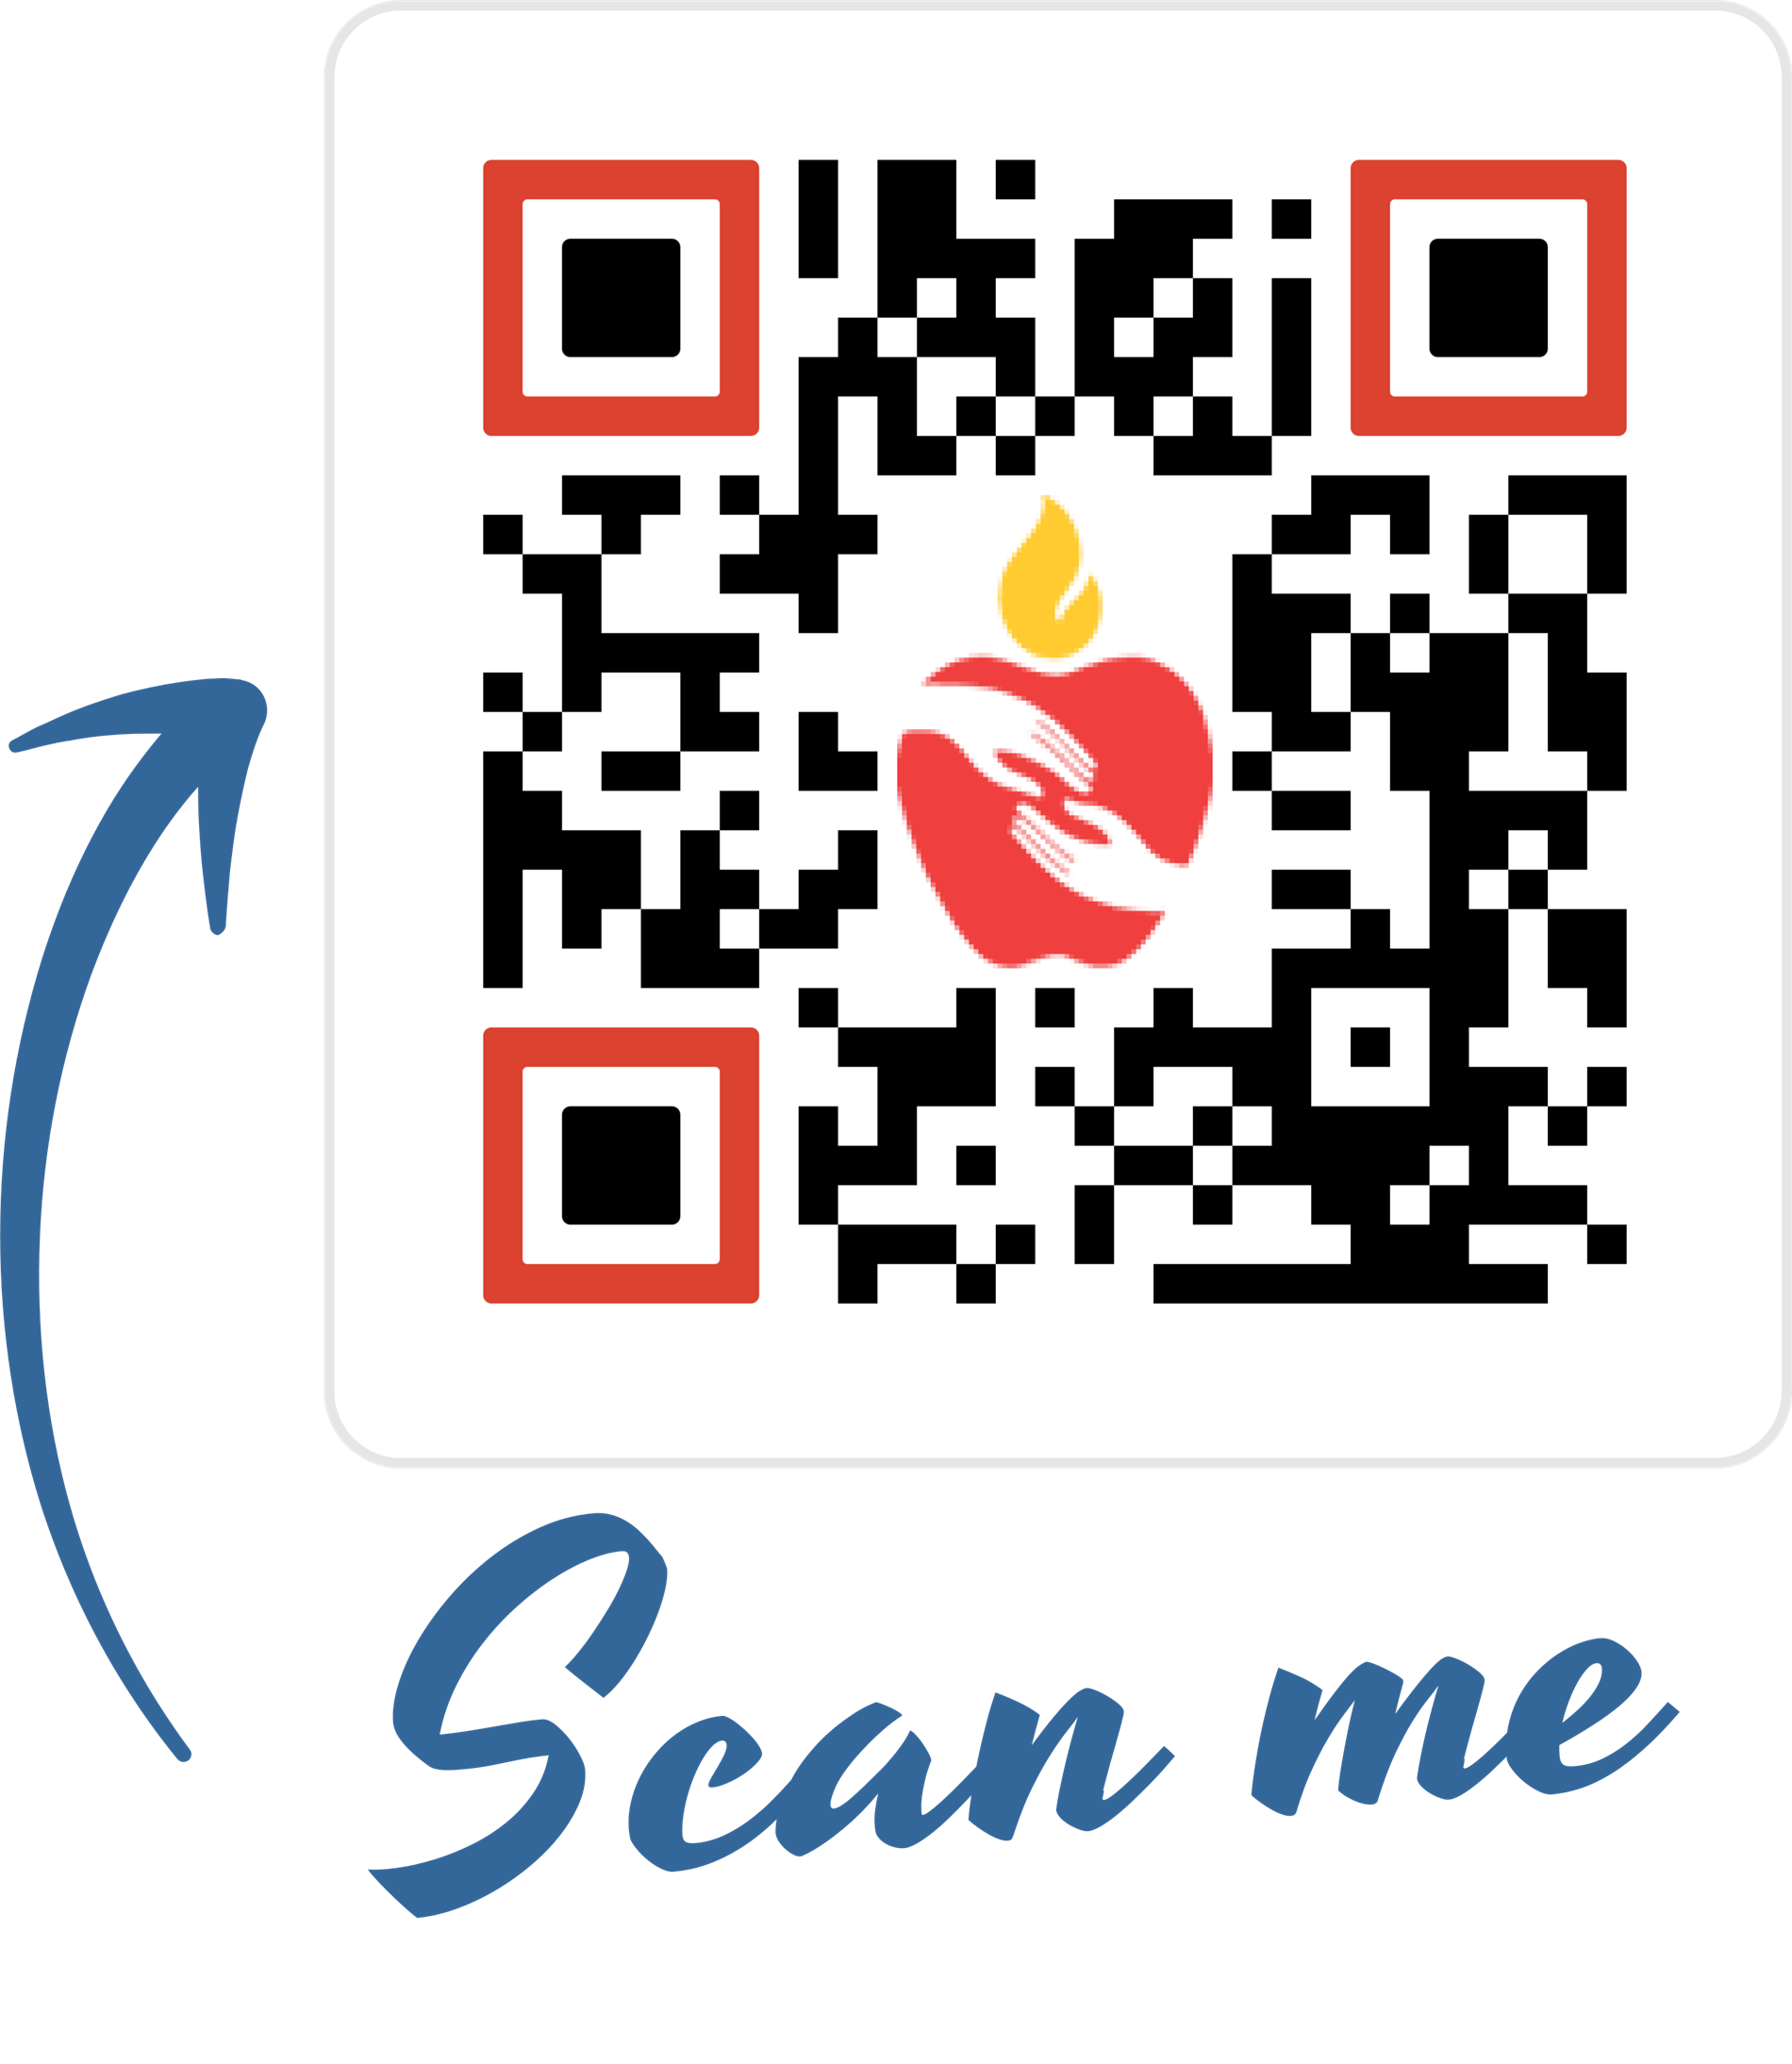 Scan to opt in